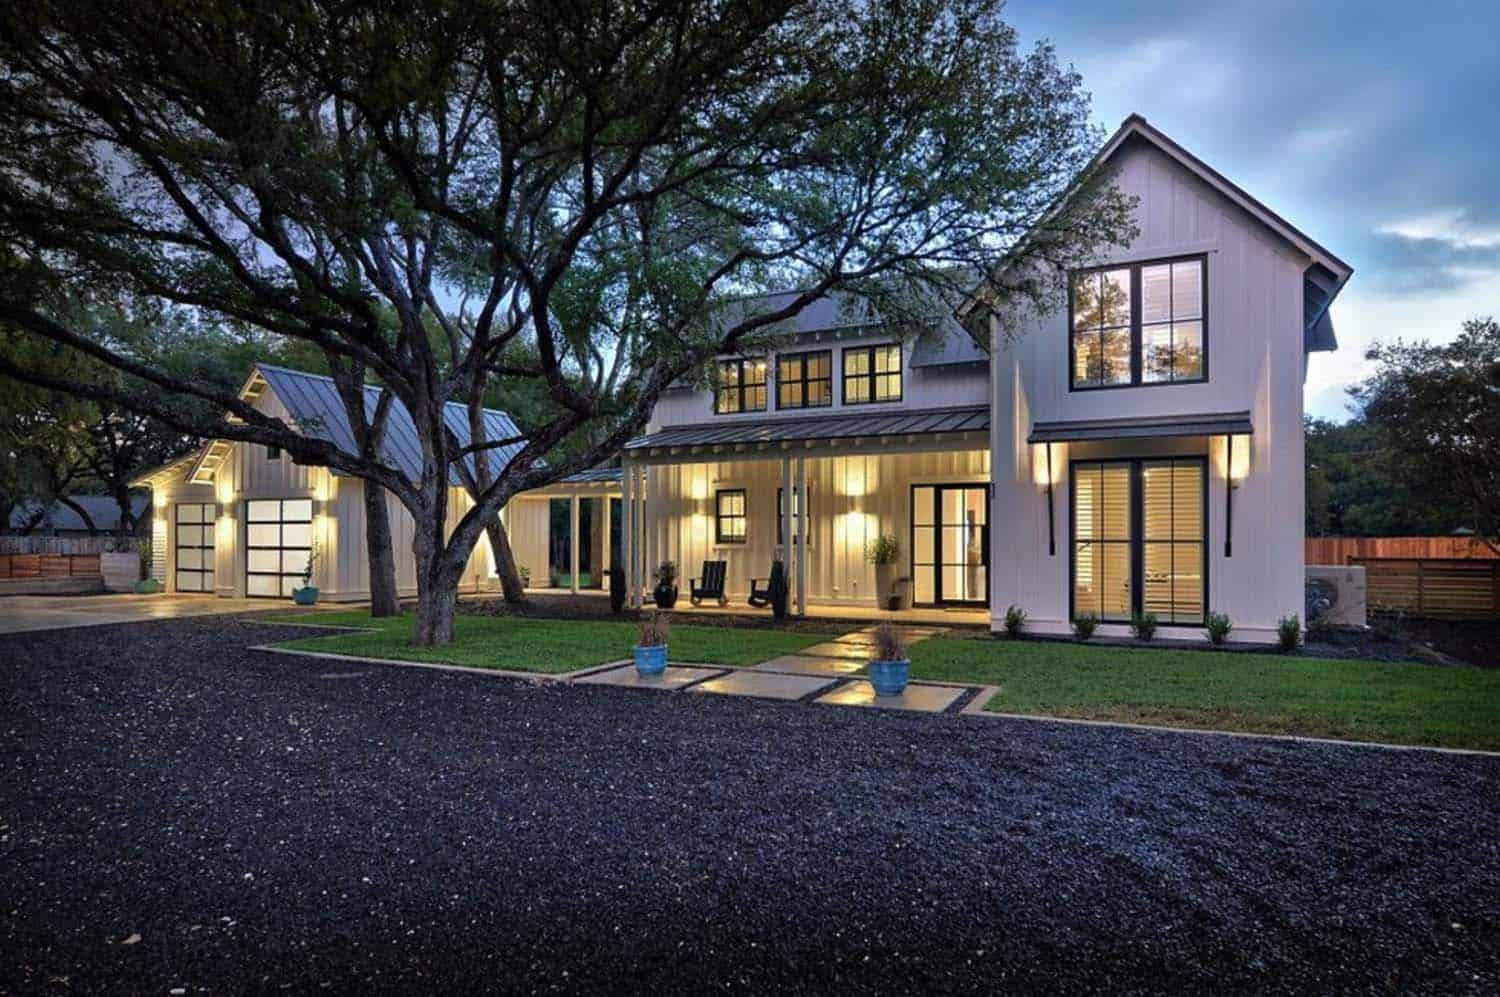 Modernized texas farmhouse filled with eye catching details for Modern custom homes